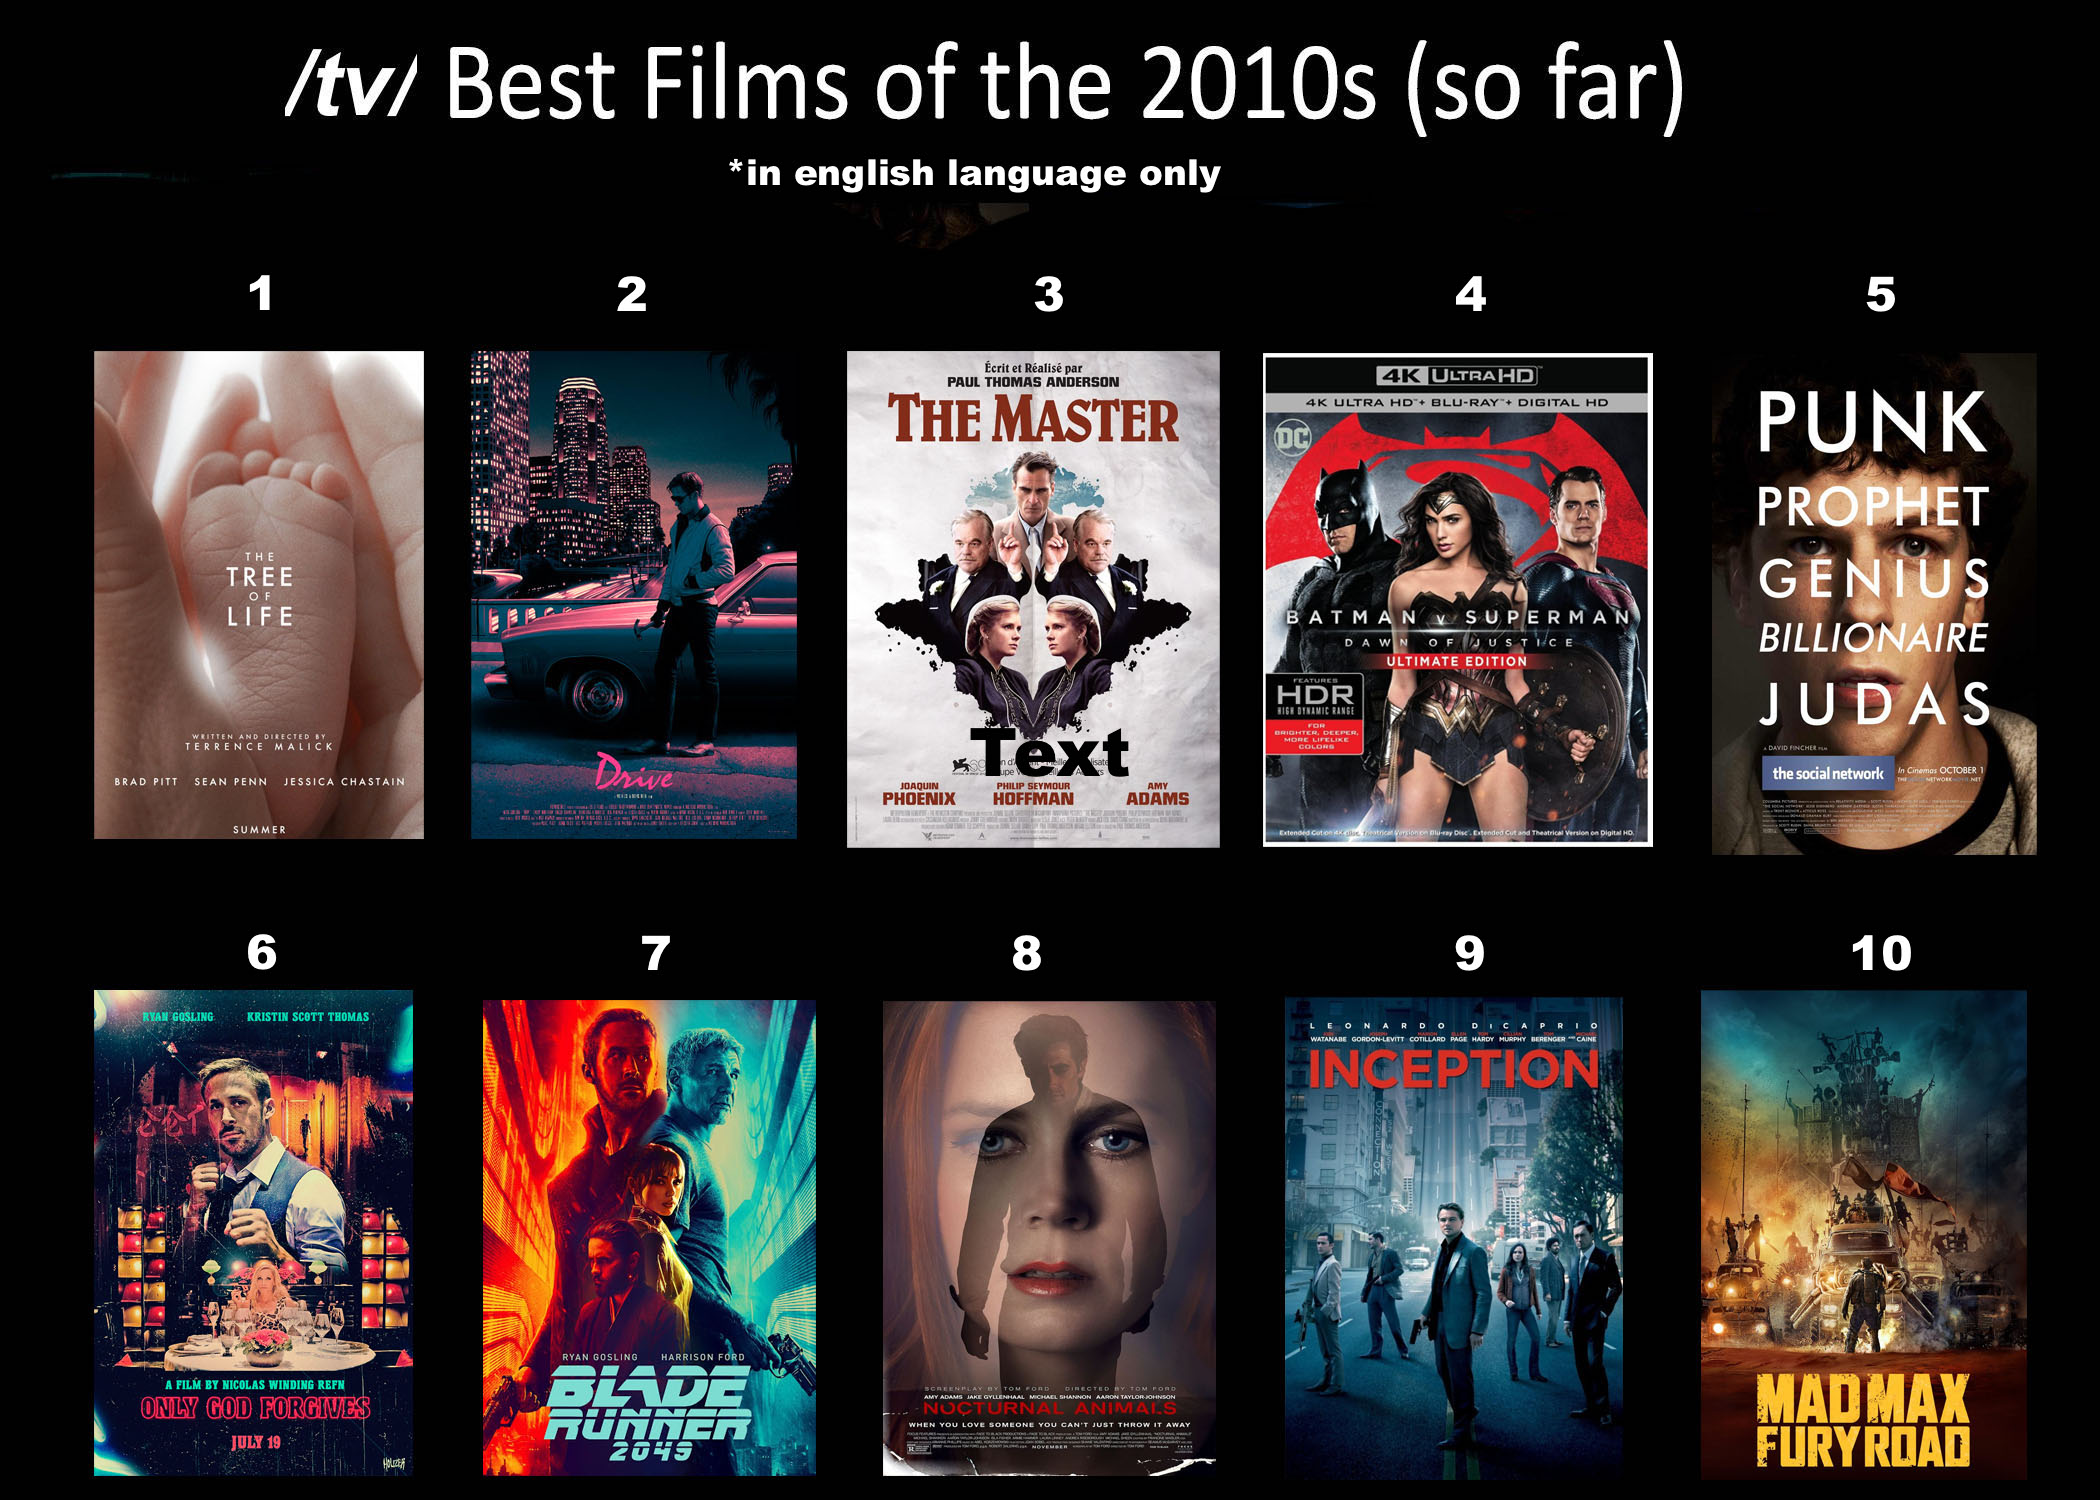 images?q=tbn:ANd9GcQh_l3eQ5xwiPy07kGEXjmjgmBKBRB7H2mRxCGhv1tFWg5c_mWT Get Inspired For Best Movies From 2010s @koolgadgetz.com.info